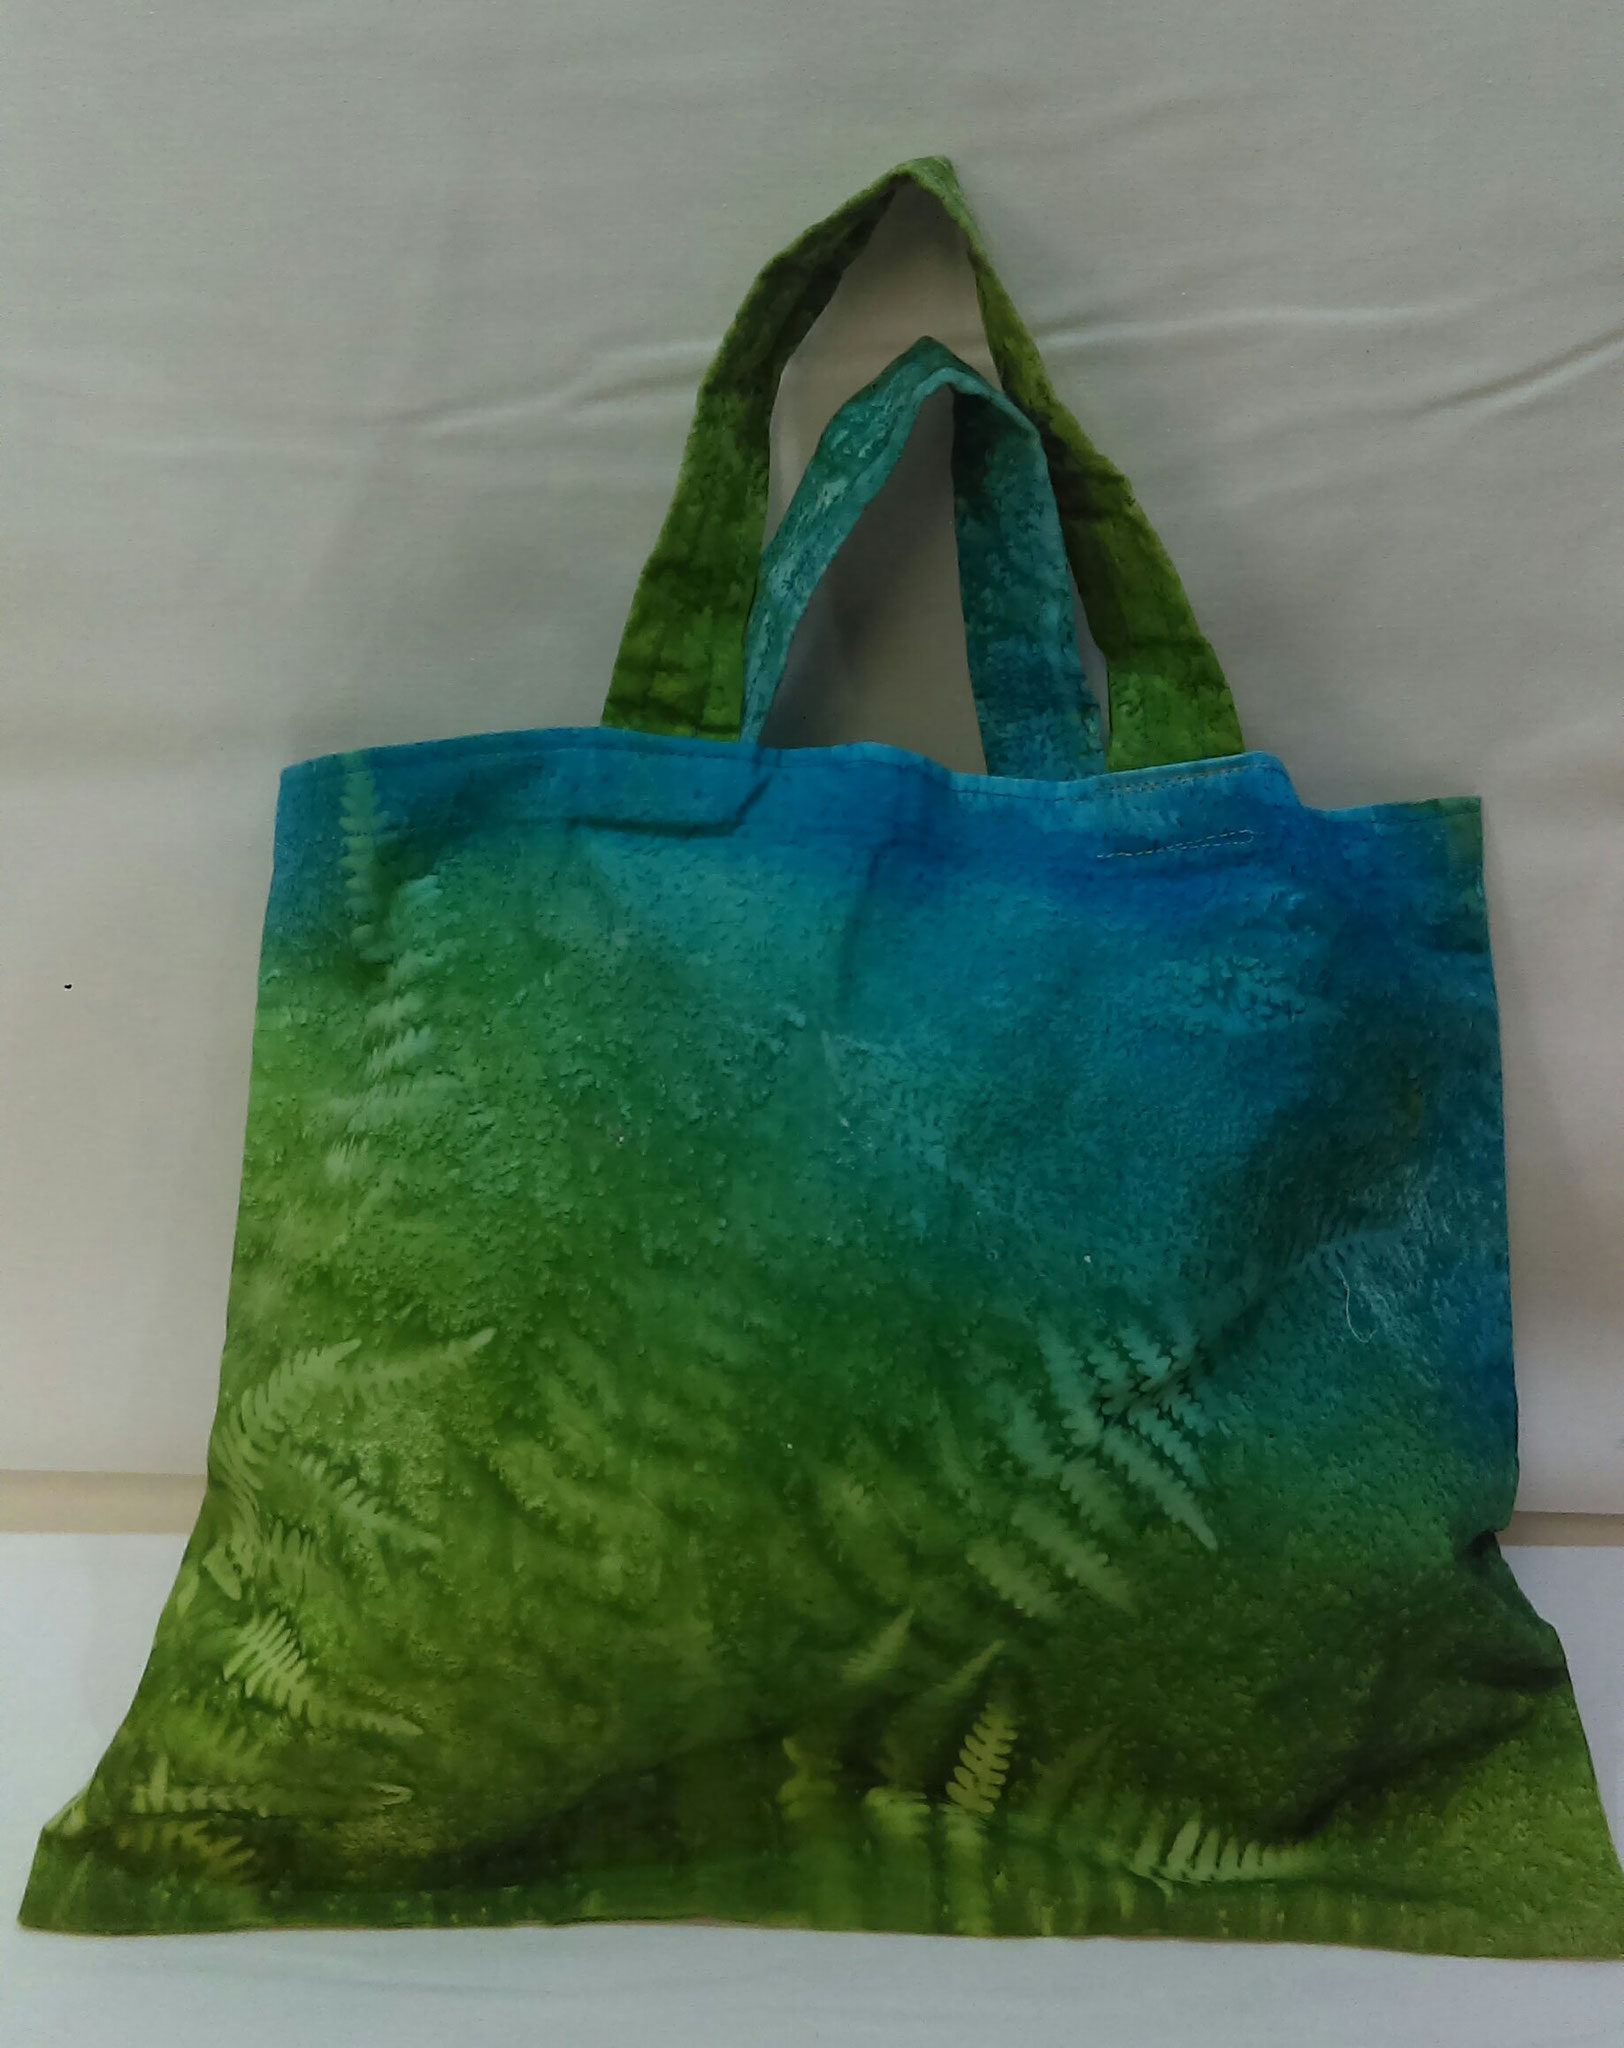 Sun Dyed Tote project for 2018 Sew Creative Camp